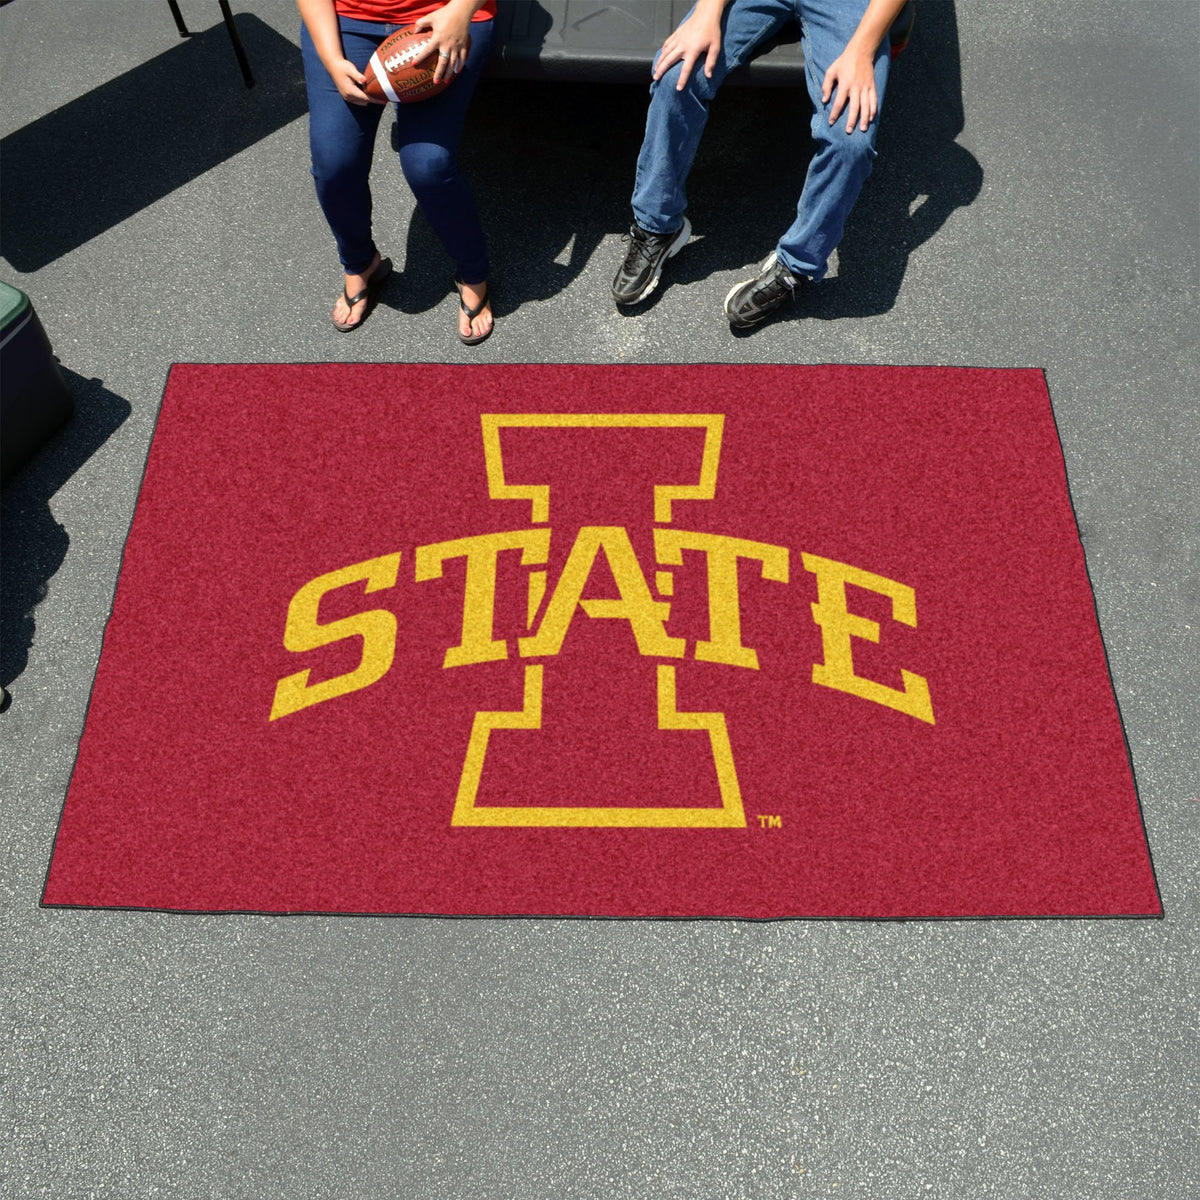 Collegiate - Ulti-Mat: A - L Collegiate Mats, Rectangular Mats, Ulti-Mat, Collegiate, Home Fan Mats Iowa State